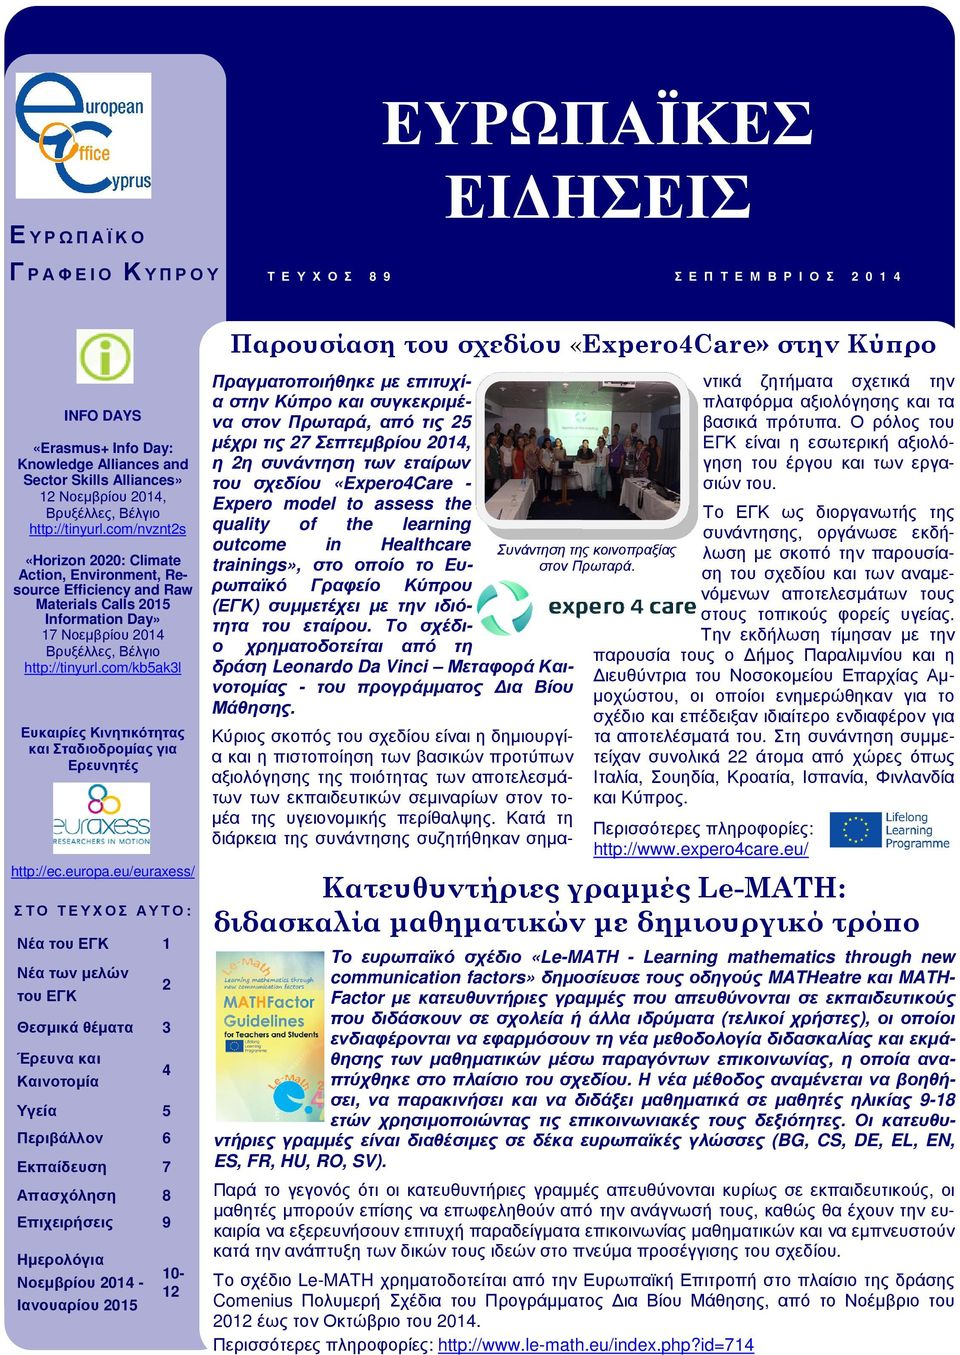 com/nvznt2s «Horizon 2020: Climate Action, Environment, Resource Efficiency and Raw Materials Calls 2015 Information Day» 17 Νοεµβρίου 2014 http://tinyurl.